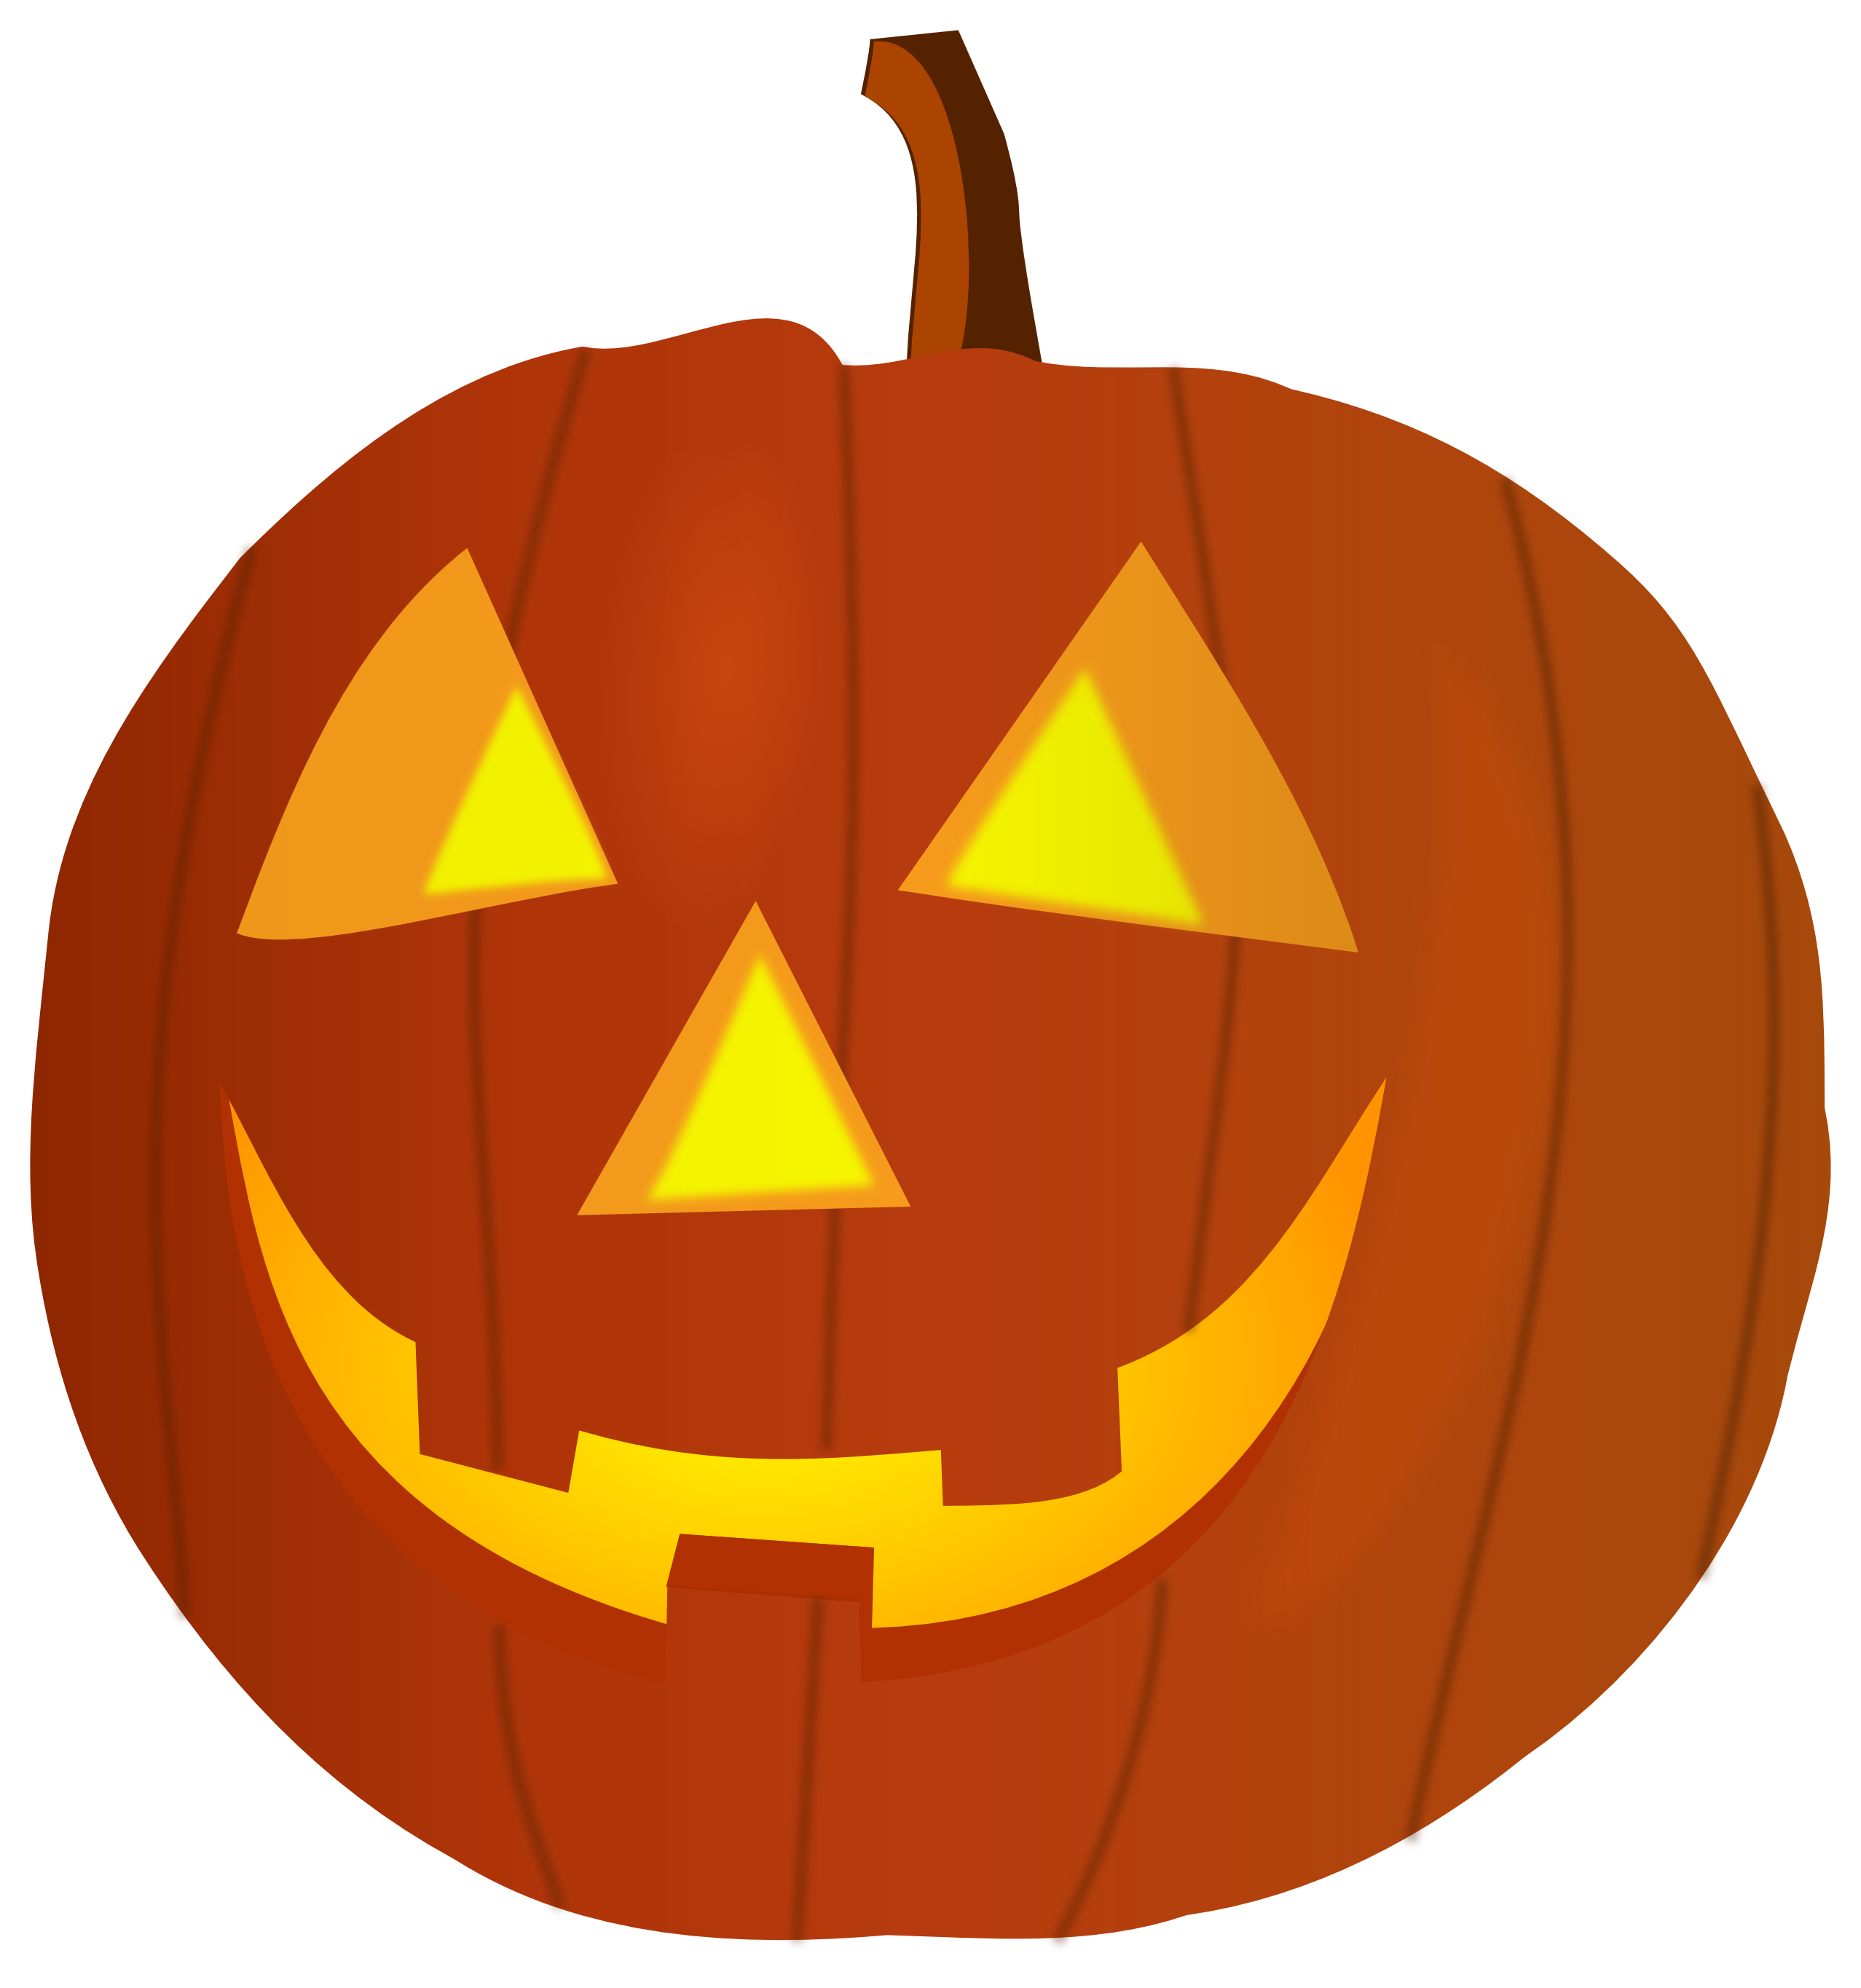 Row transparent background pumpkin clipart png royalty free Halloween Pumpkin Carving Clip Art | Clipart Panda - Free Clipart Images png royalty free